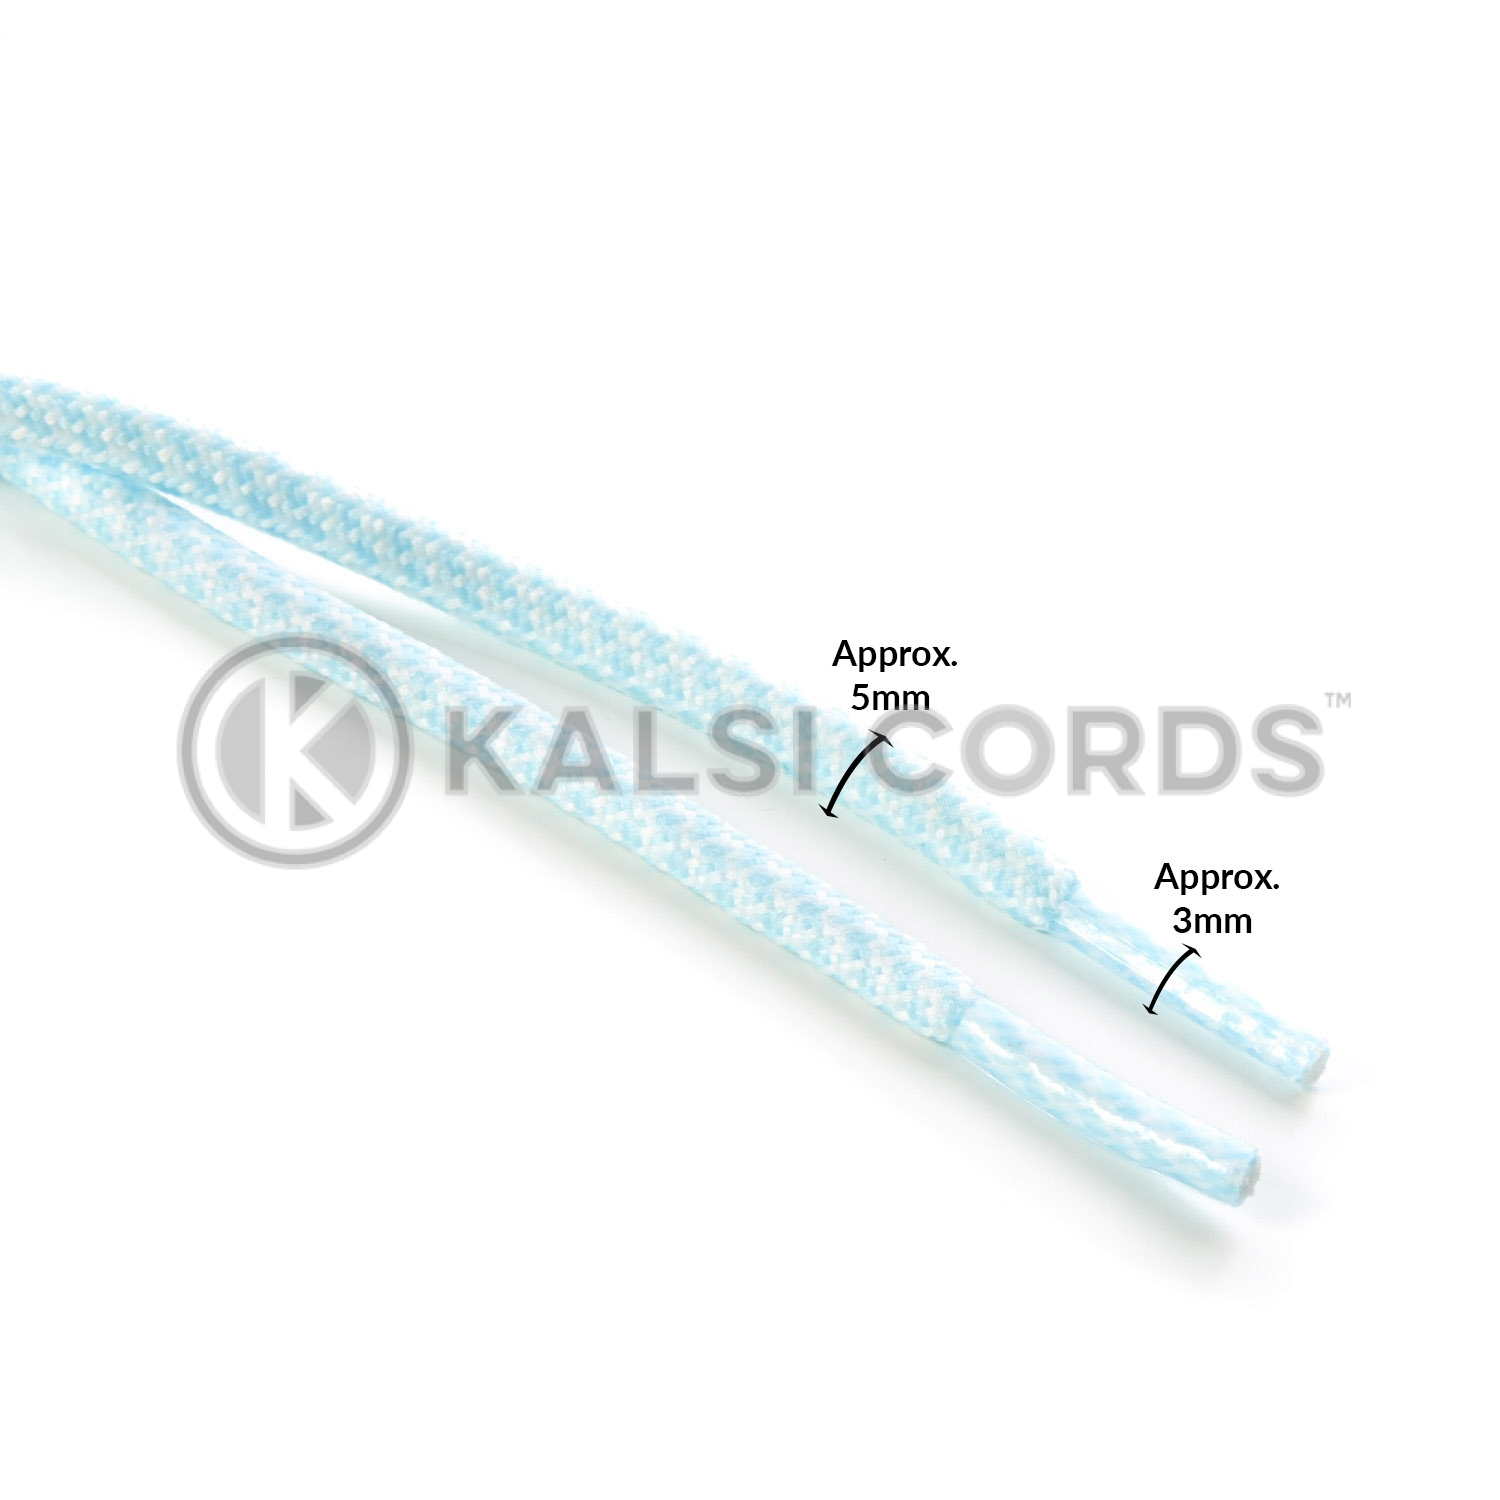 T655 5mm Round Cord Honeycomb Shoe Laces Baby Blue White Kids Trainers Adults Hiking Walking Boots Kalsi Cords